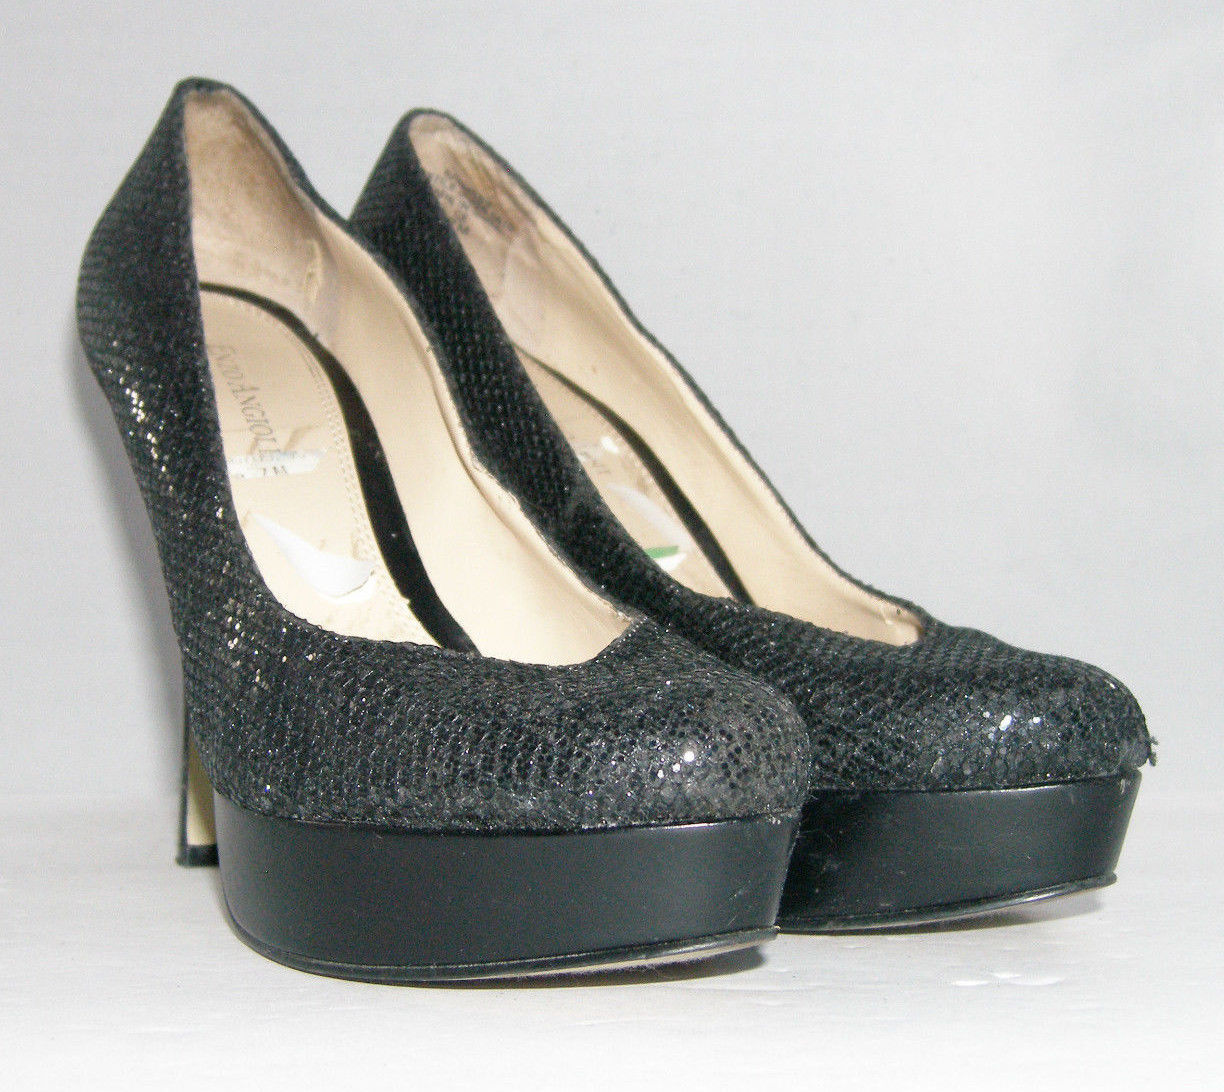 e1288424aa Enzo Angiolini Smiles sparkle black evening pumps heel platform womens  shoes 7M